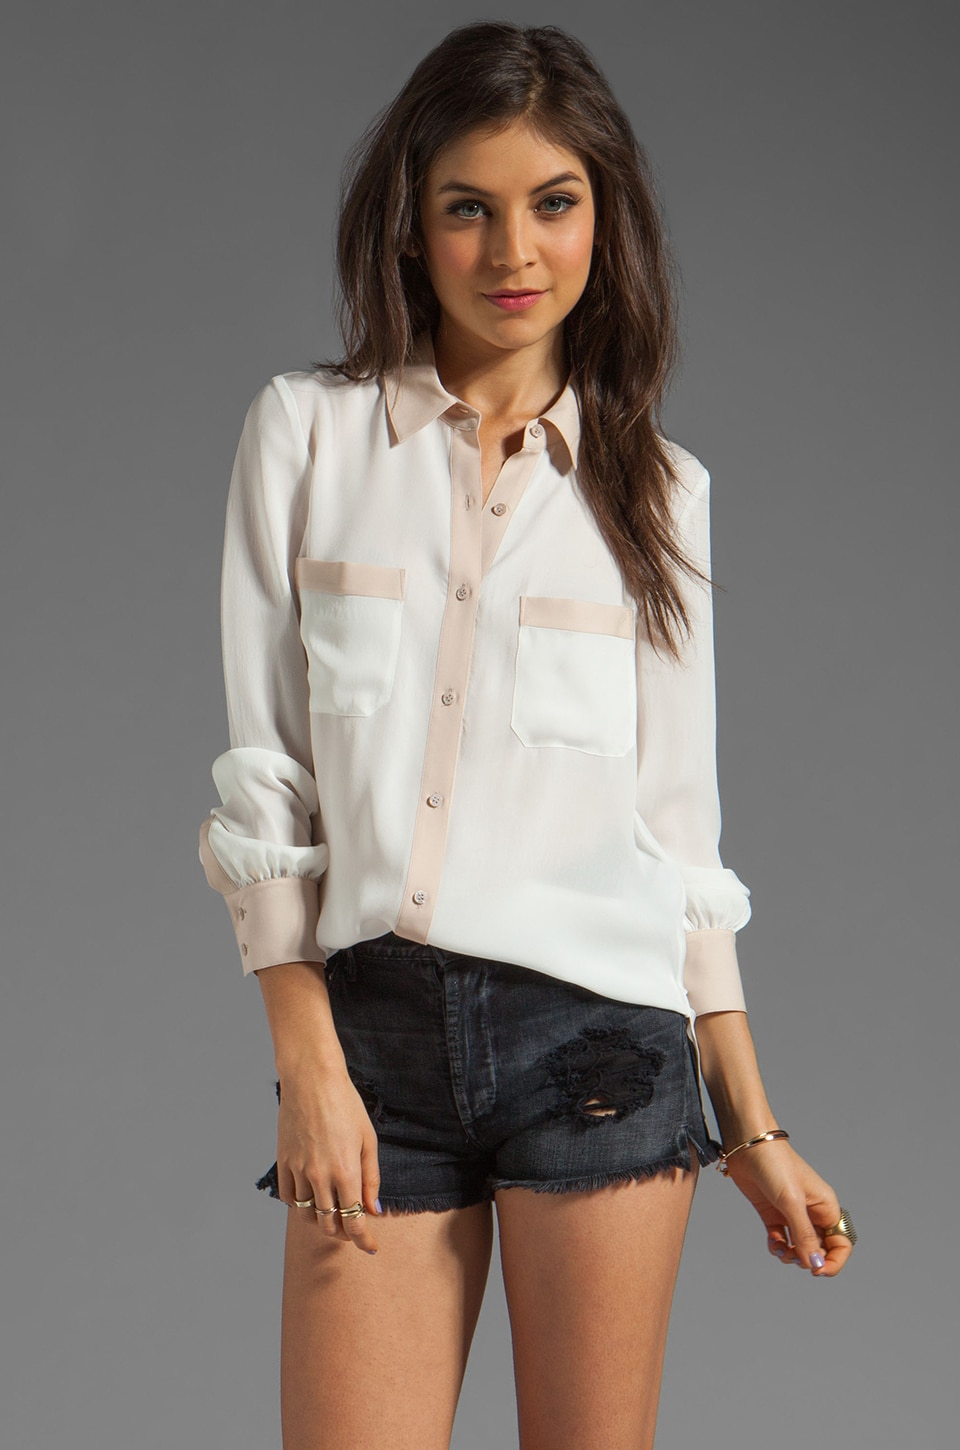 Haute Hippie Colorblocked Blouse in Swan/Buff